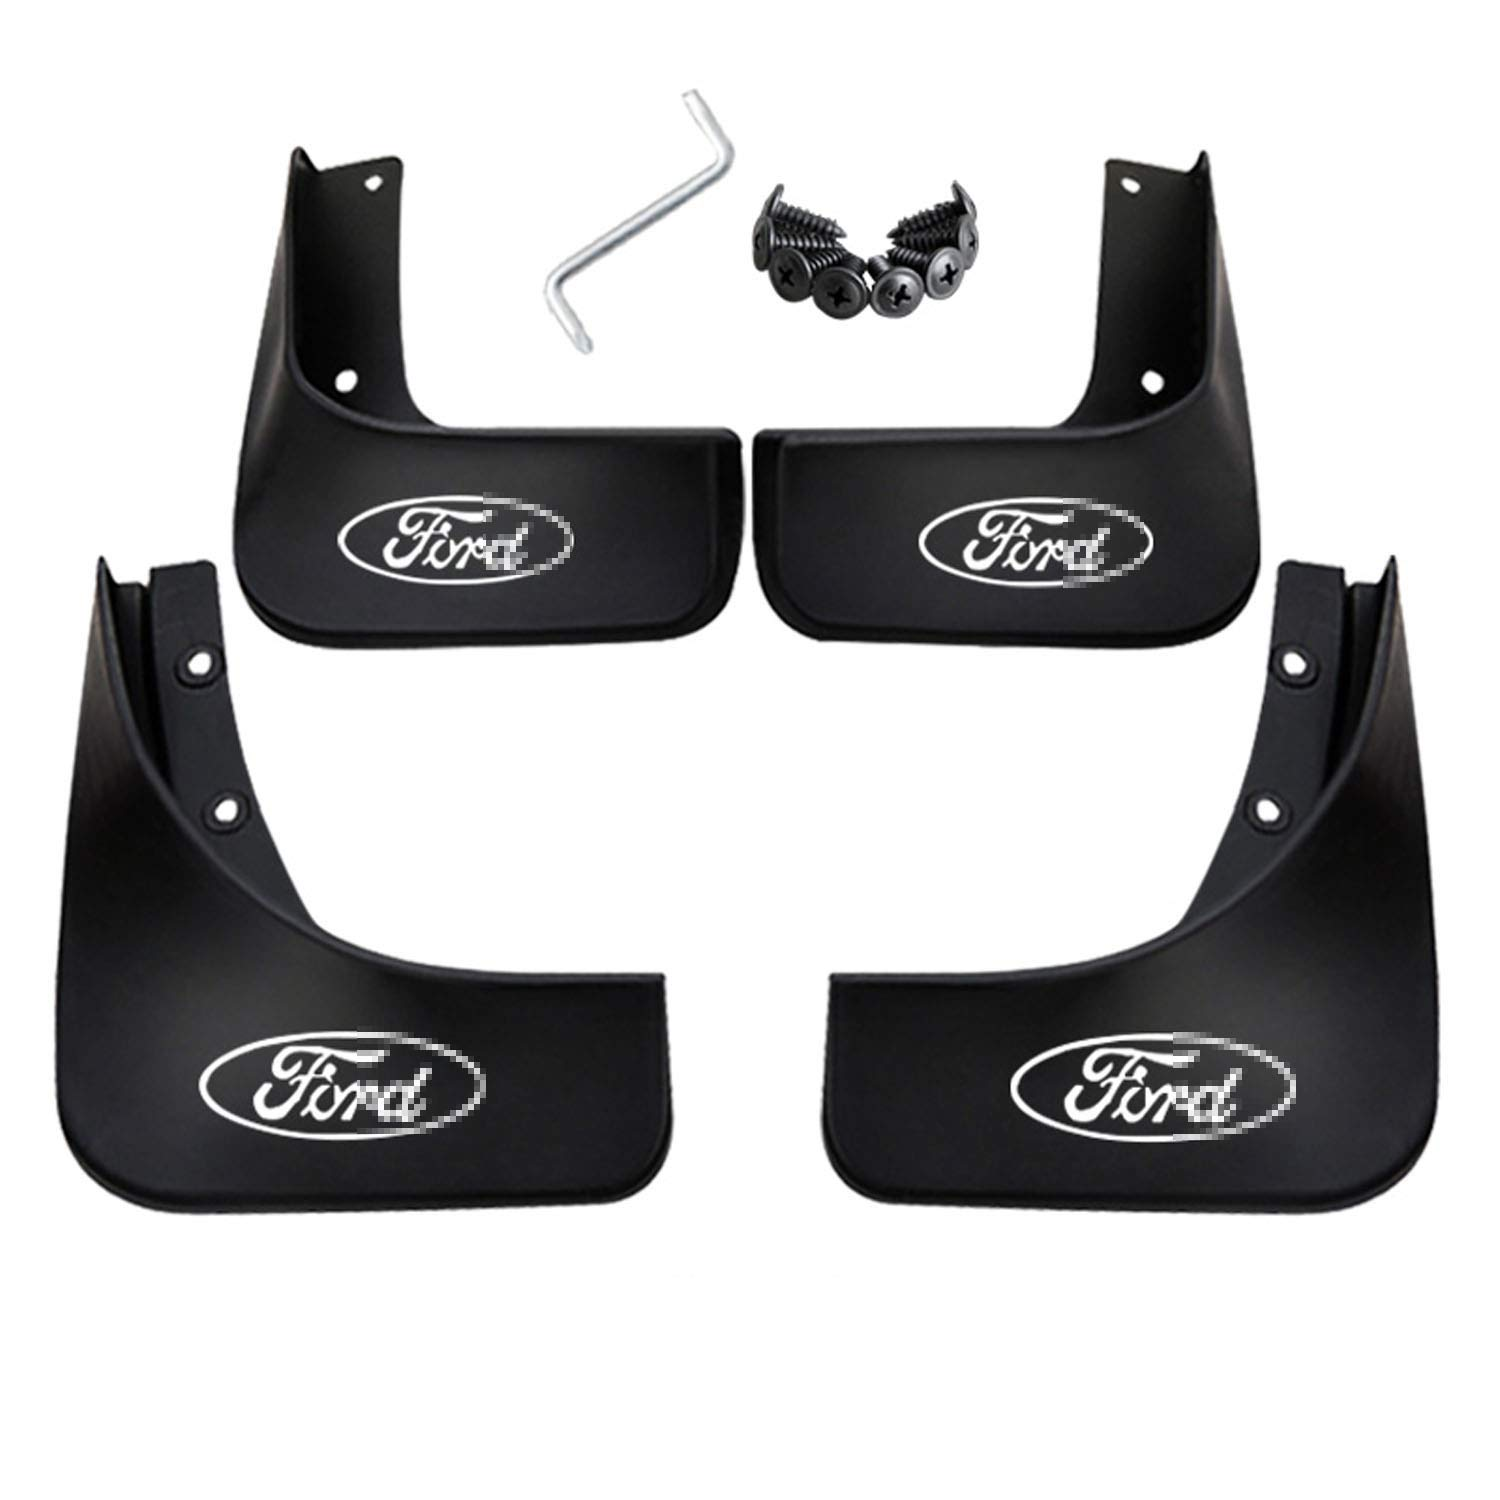 Front & Rear Molded Splash Guard Fender White Logo Car Mudguard Mud Flaps Cover for Mondeo 2007-2013 Hireno